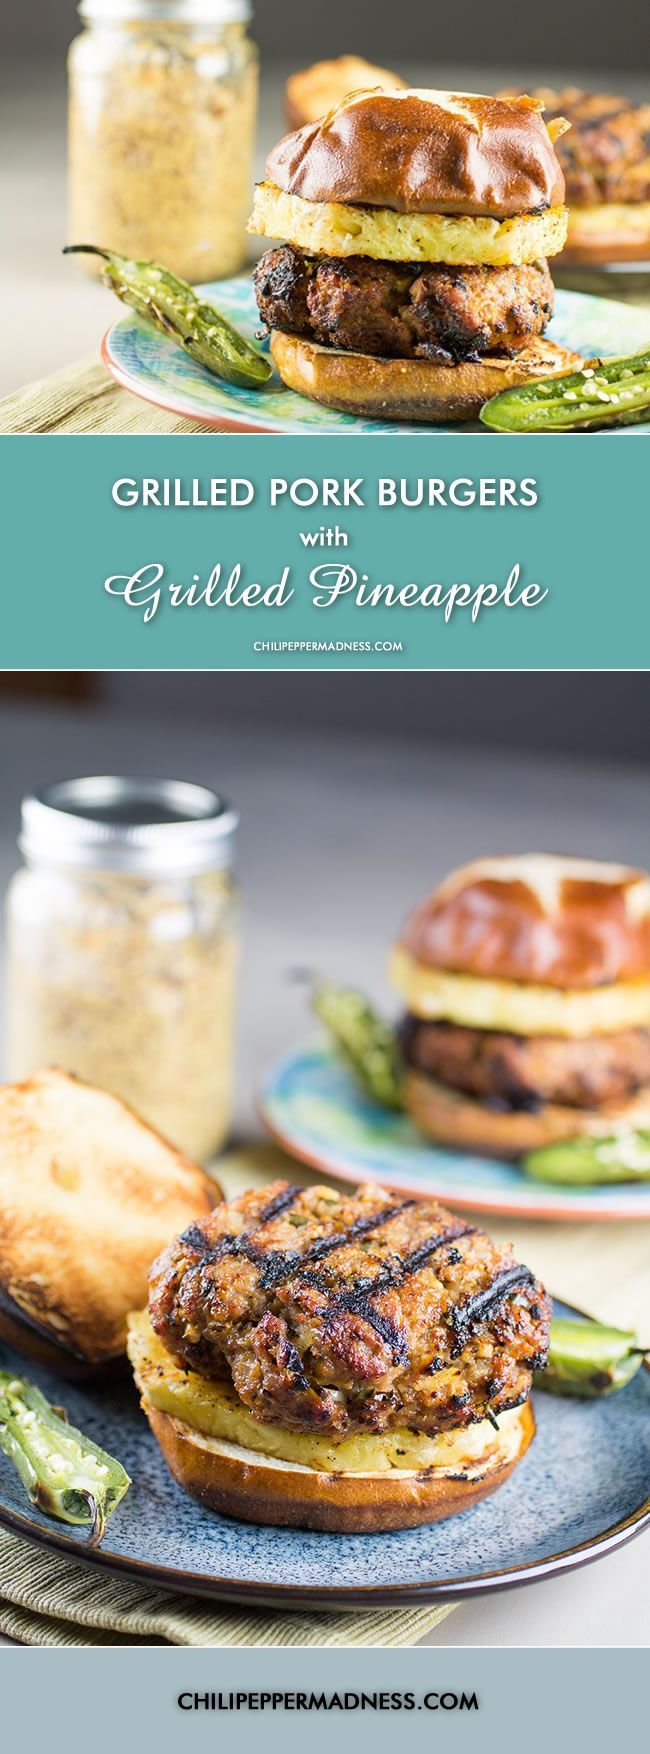 Grilled Pork Burgers – These burgers are made with ground pork and a ...